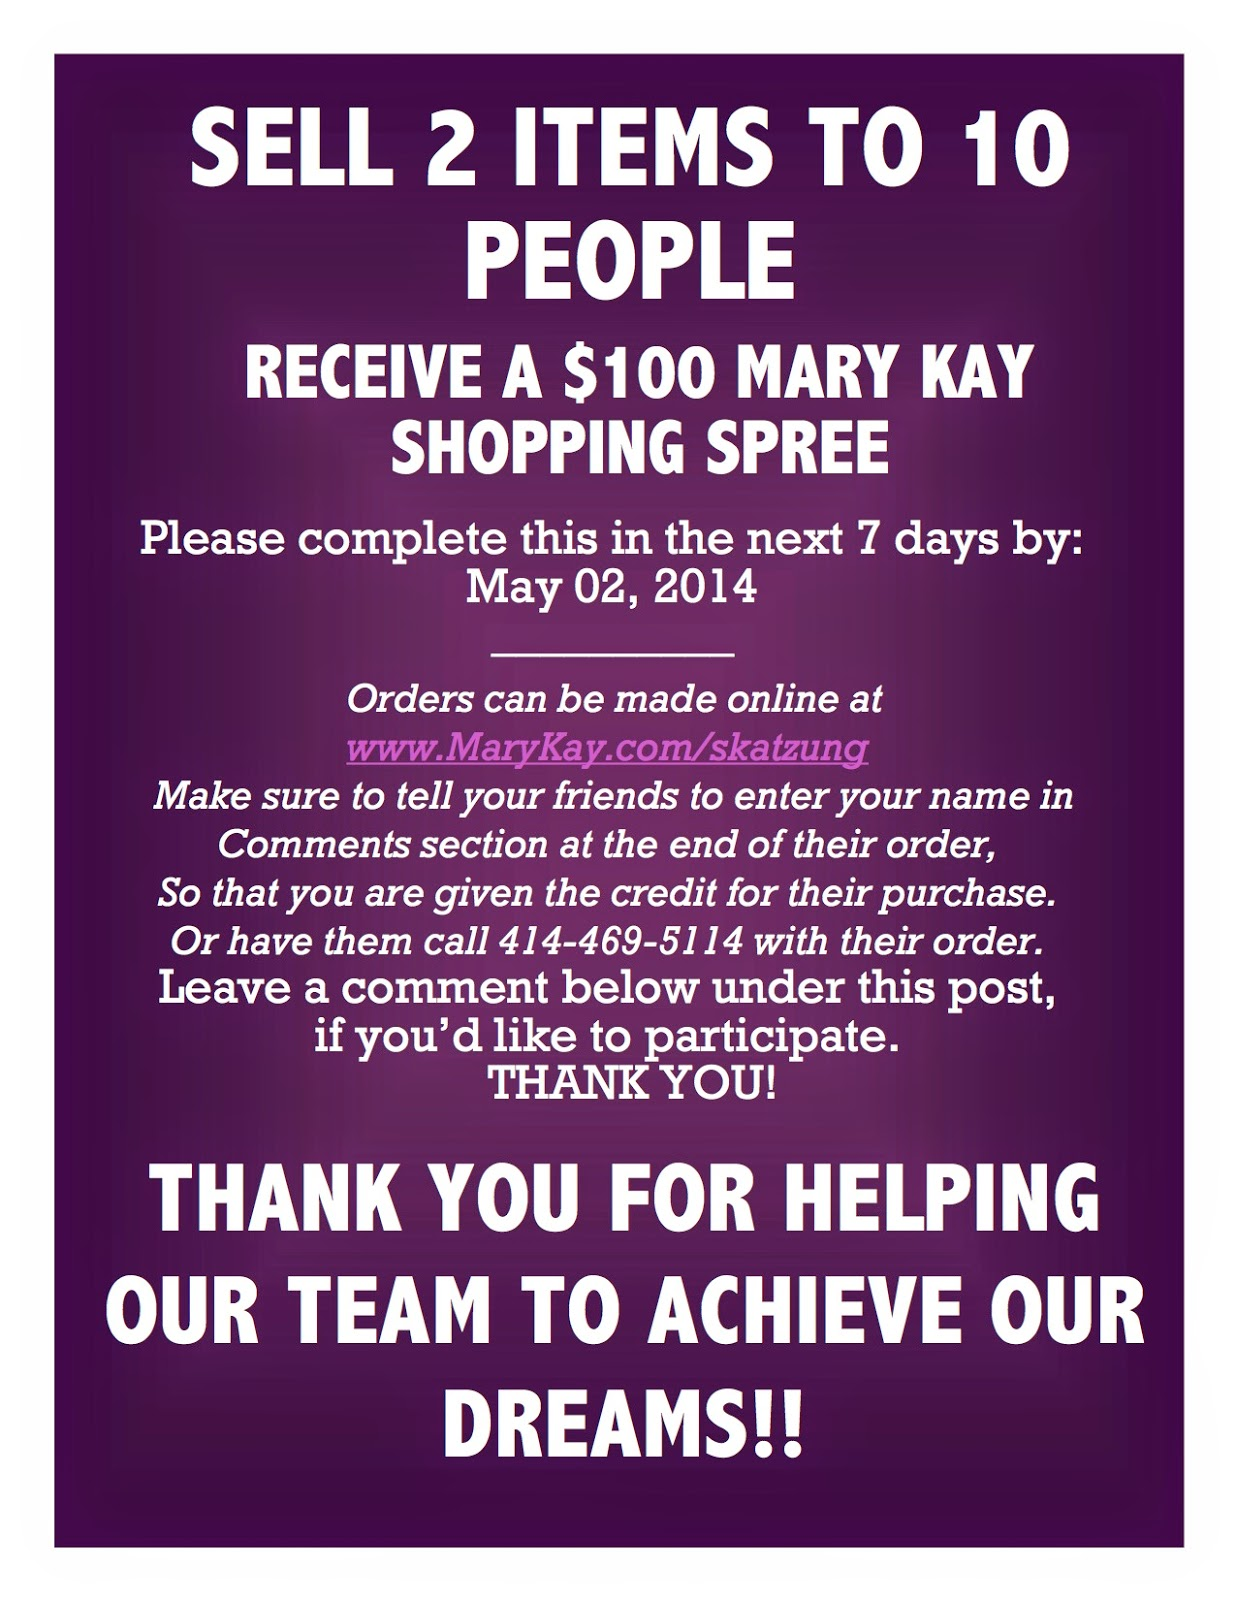 accentuate n ink $100 mary kay shopping spree it s easy as pie